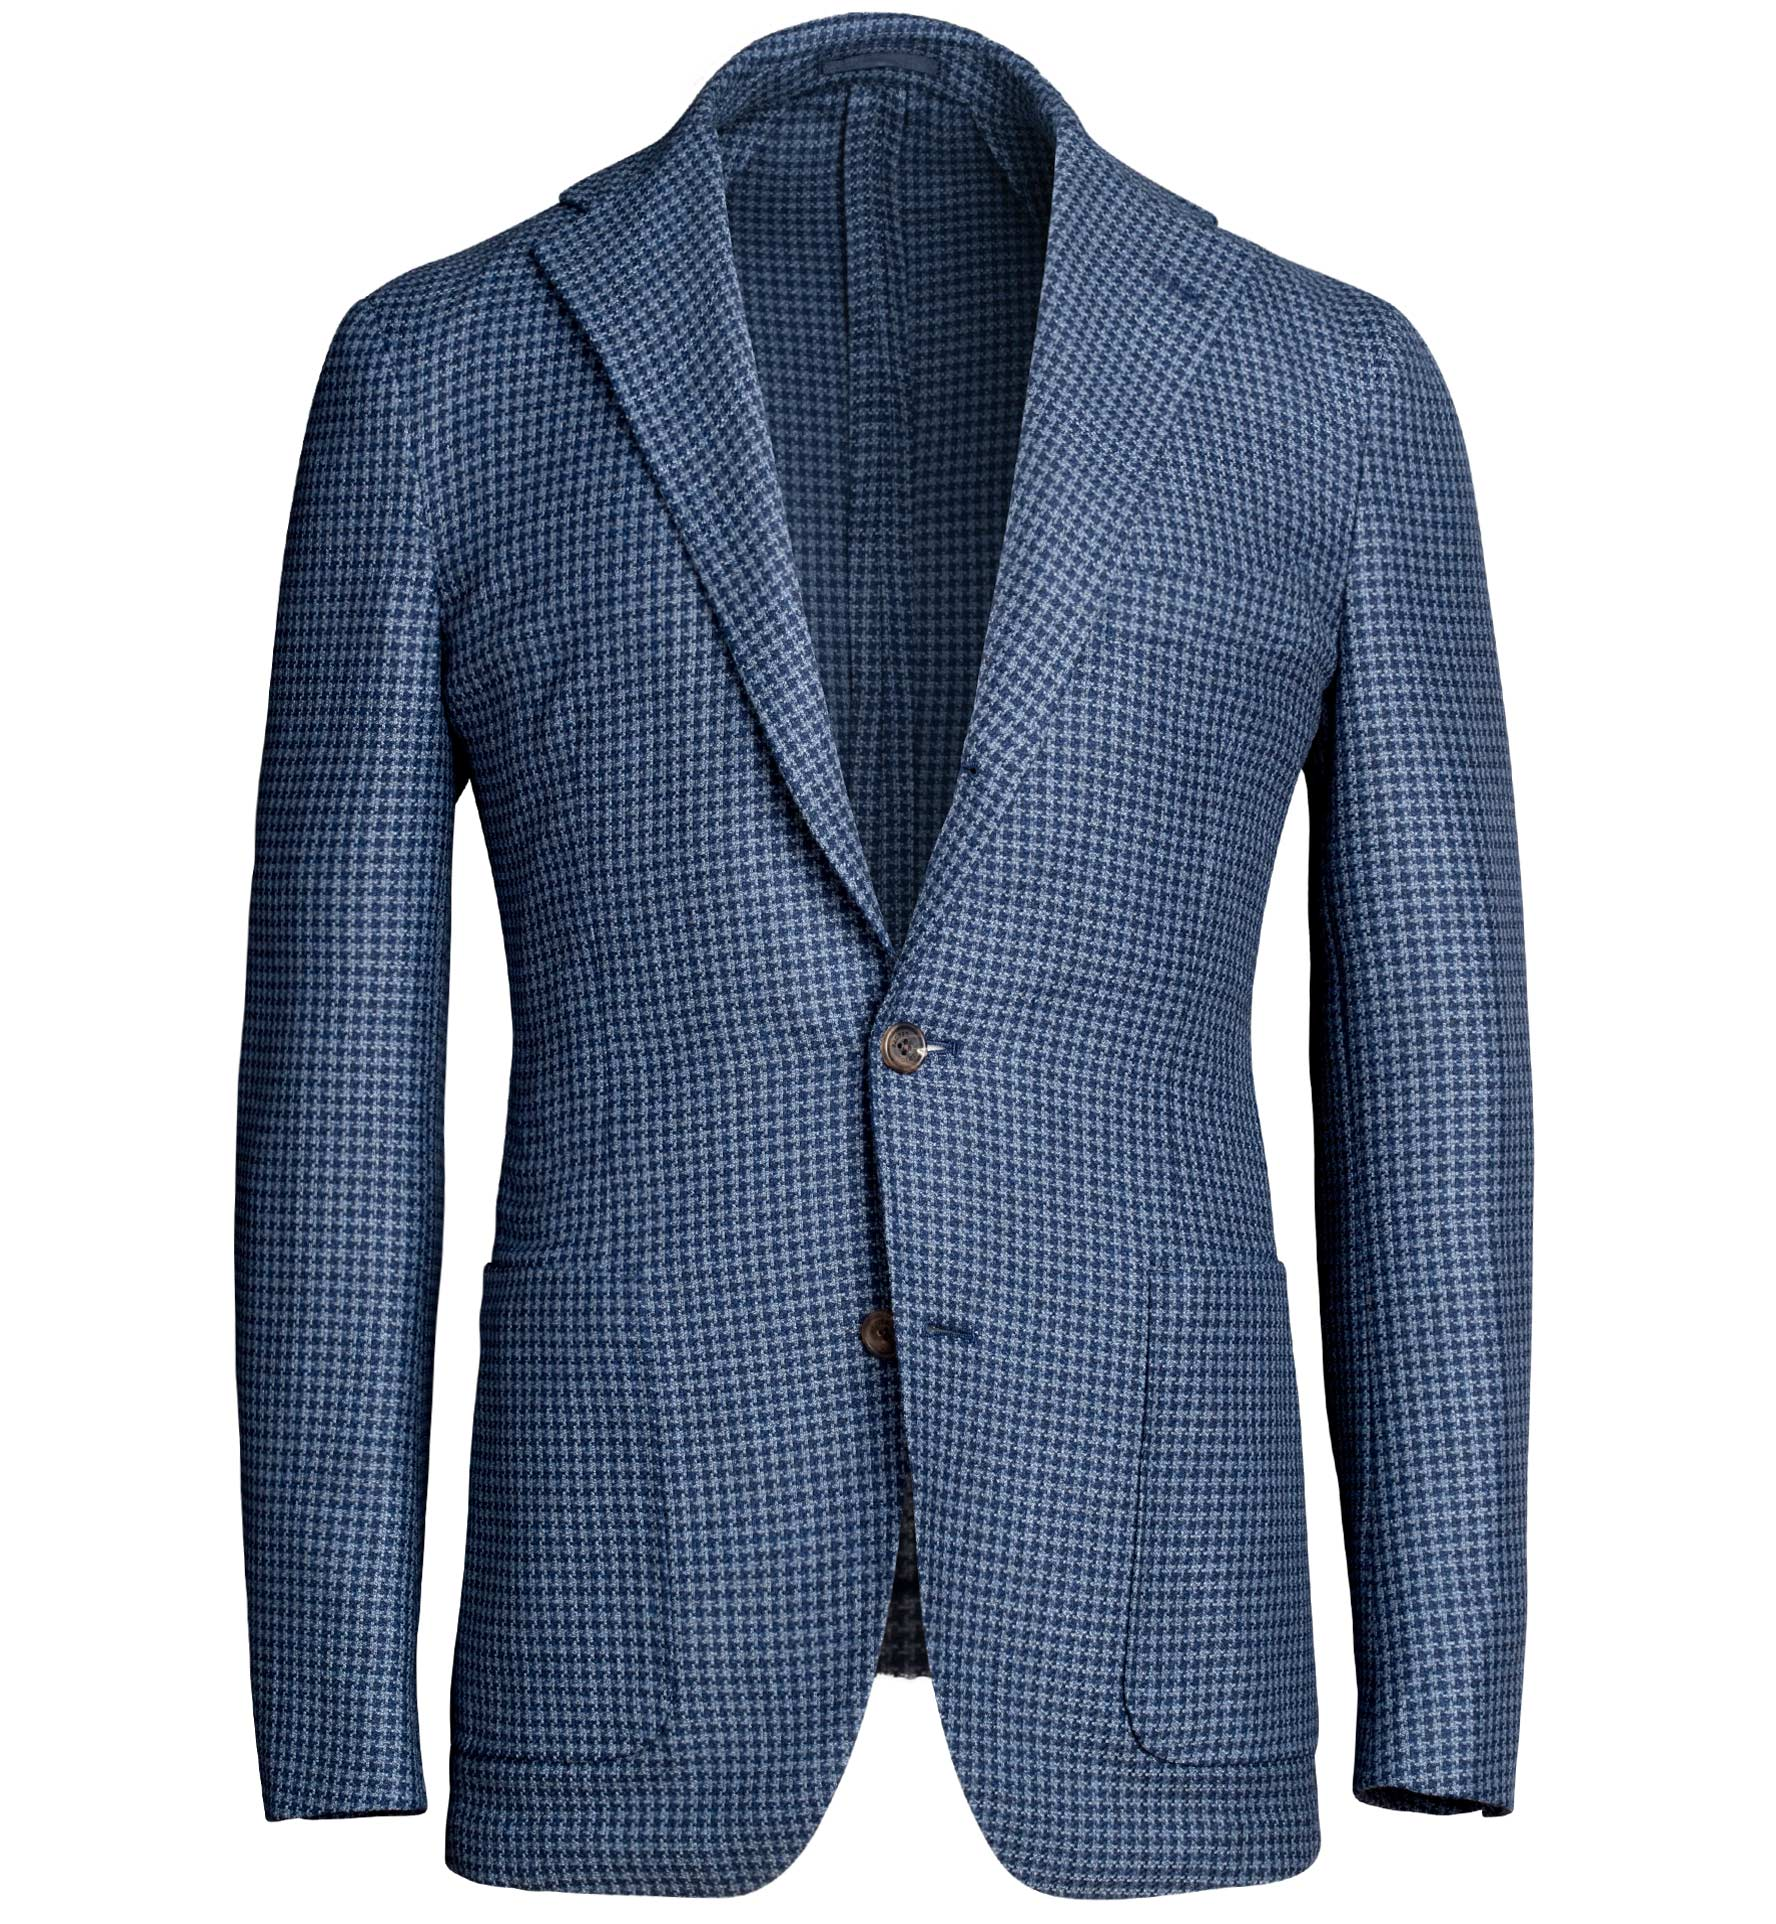 Zoom Image of Waverly Blue Houndstooth Wool and Cotton Jacket